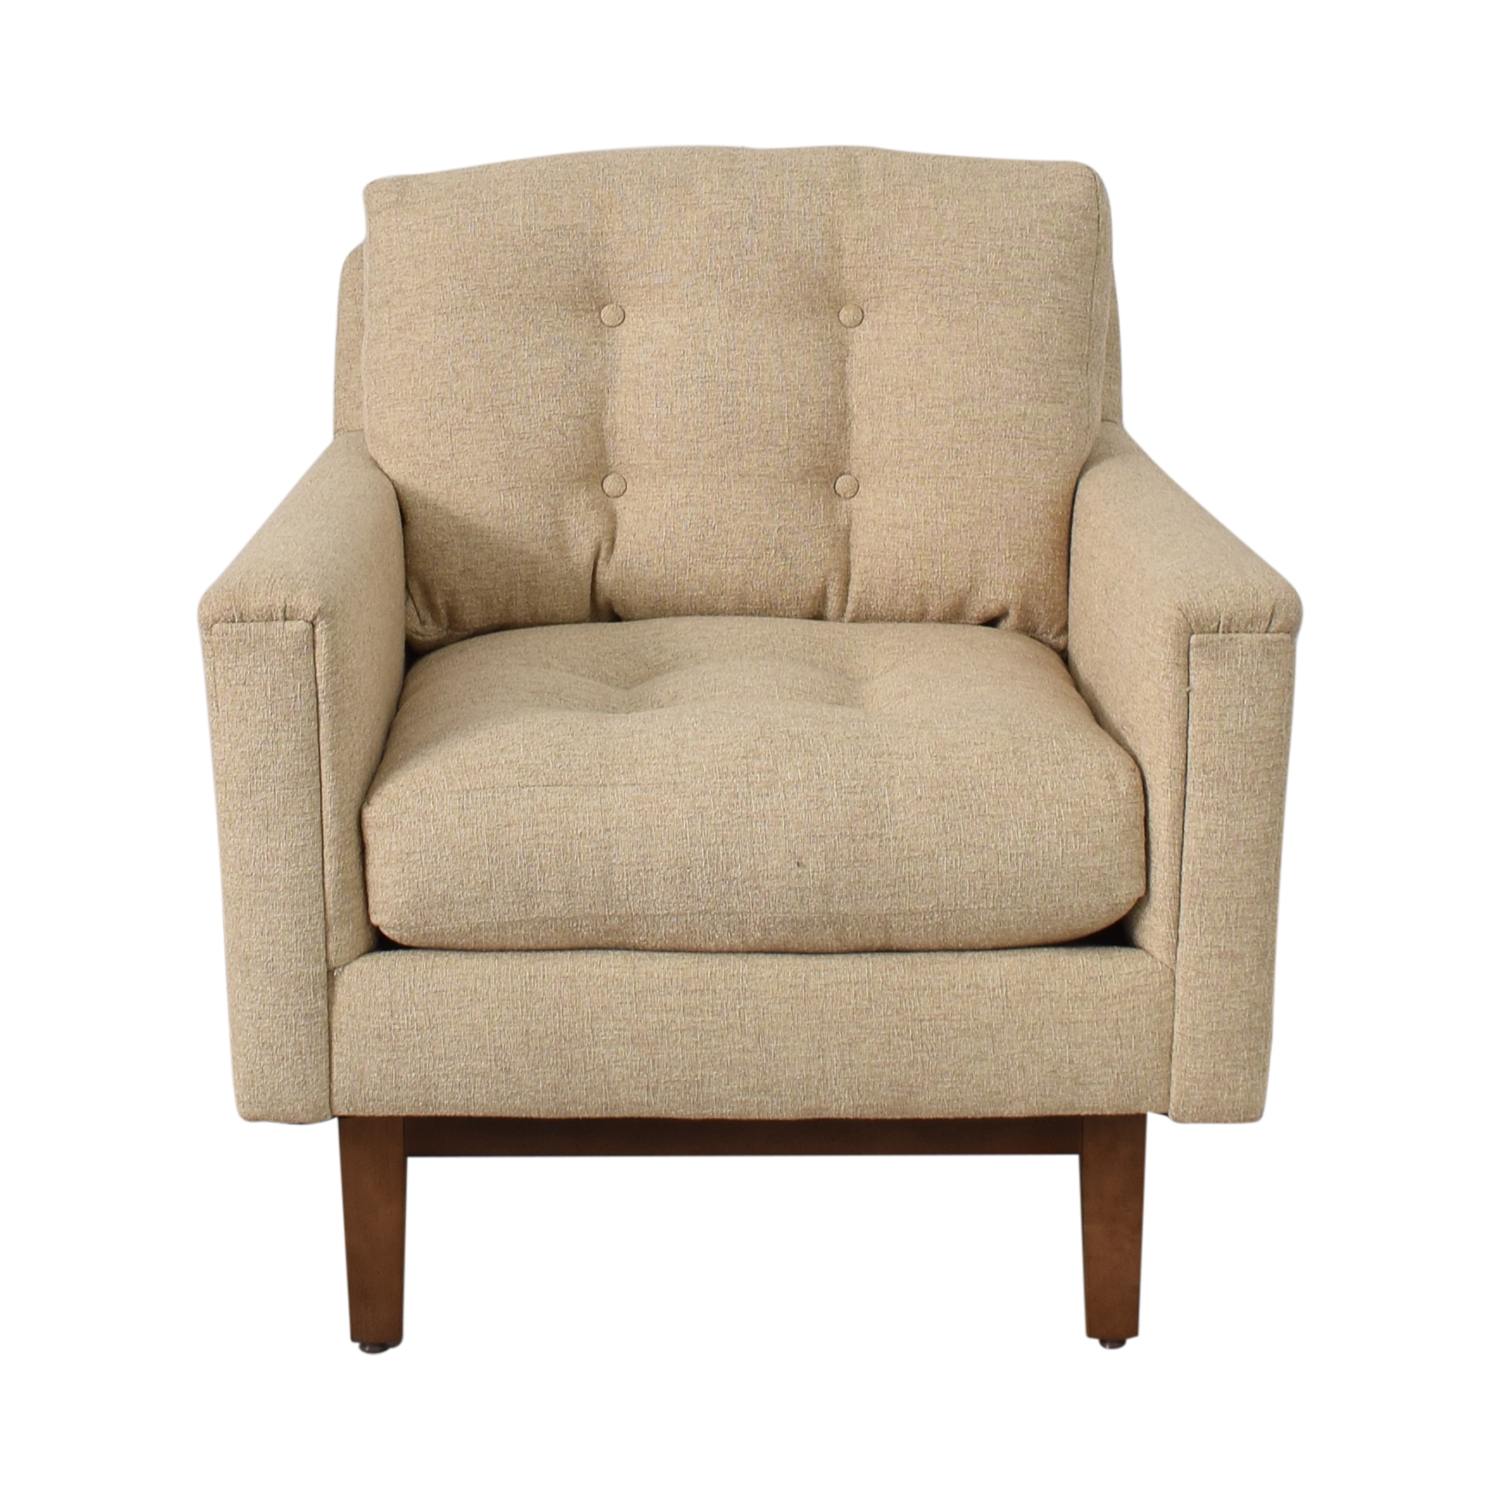 Rowe Furniture Rowe Furniture Ethan Beige Tufted Accent Armchair nyc